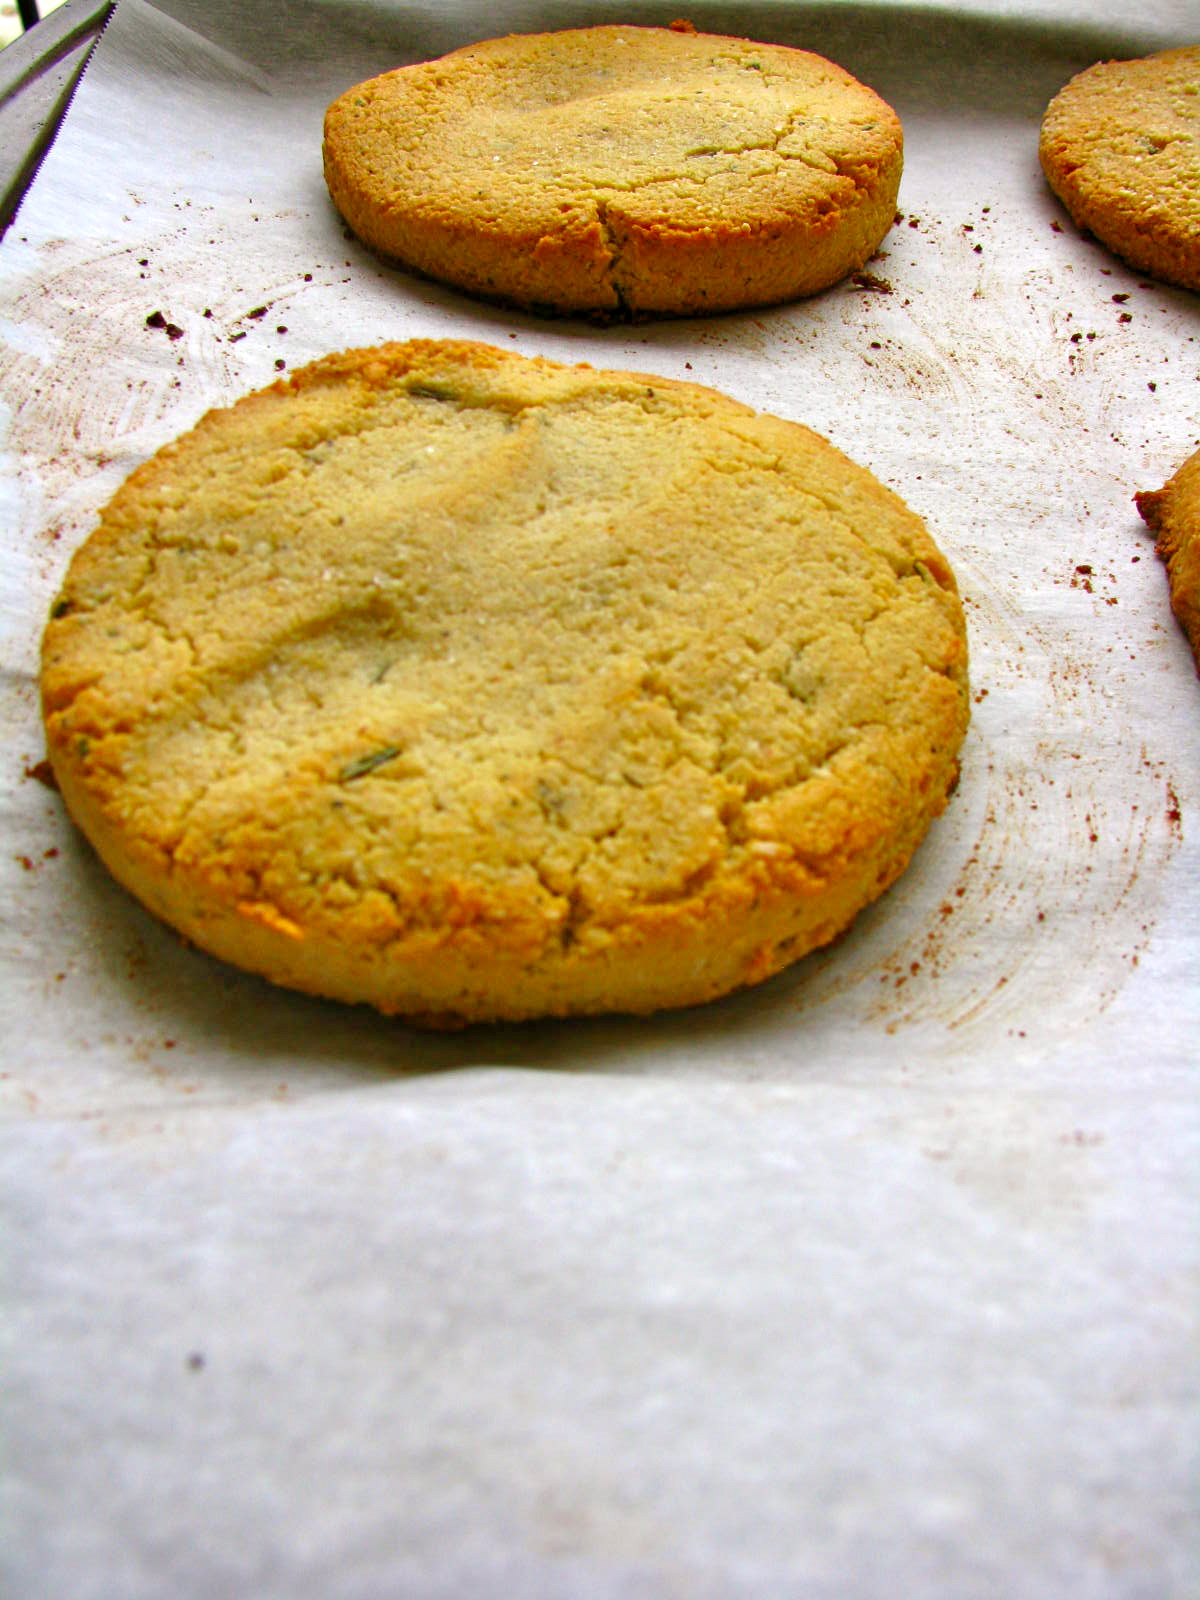 Limp biscuit meaning